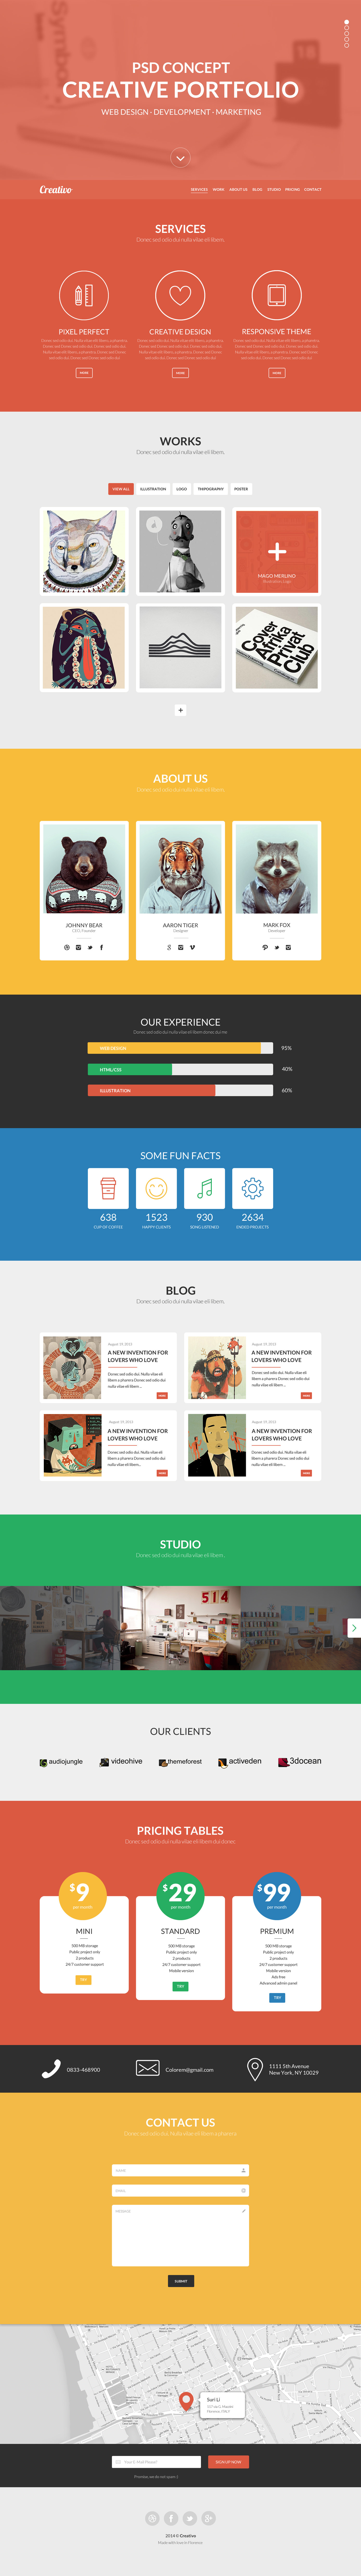 Colourful One-Page Portfolio PSD Template Design